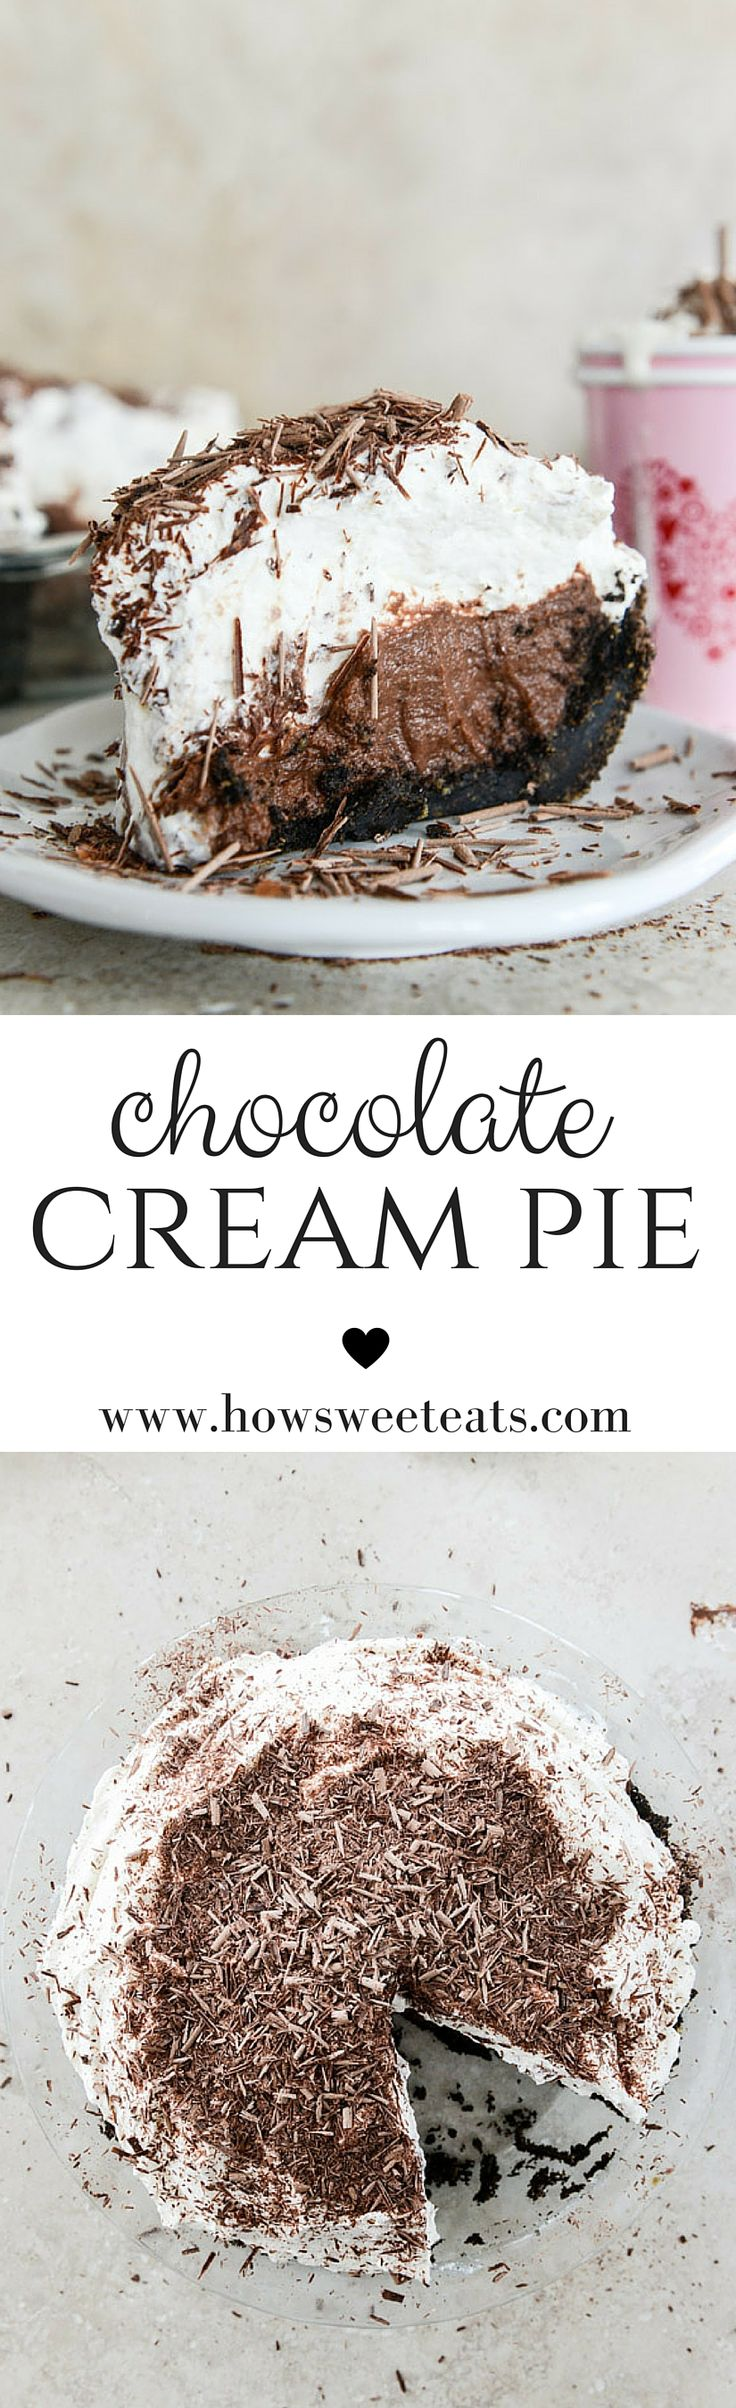 chocolate cream pie with vanilla whipped cream by @howsweeteats I howsweeteats.com